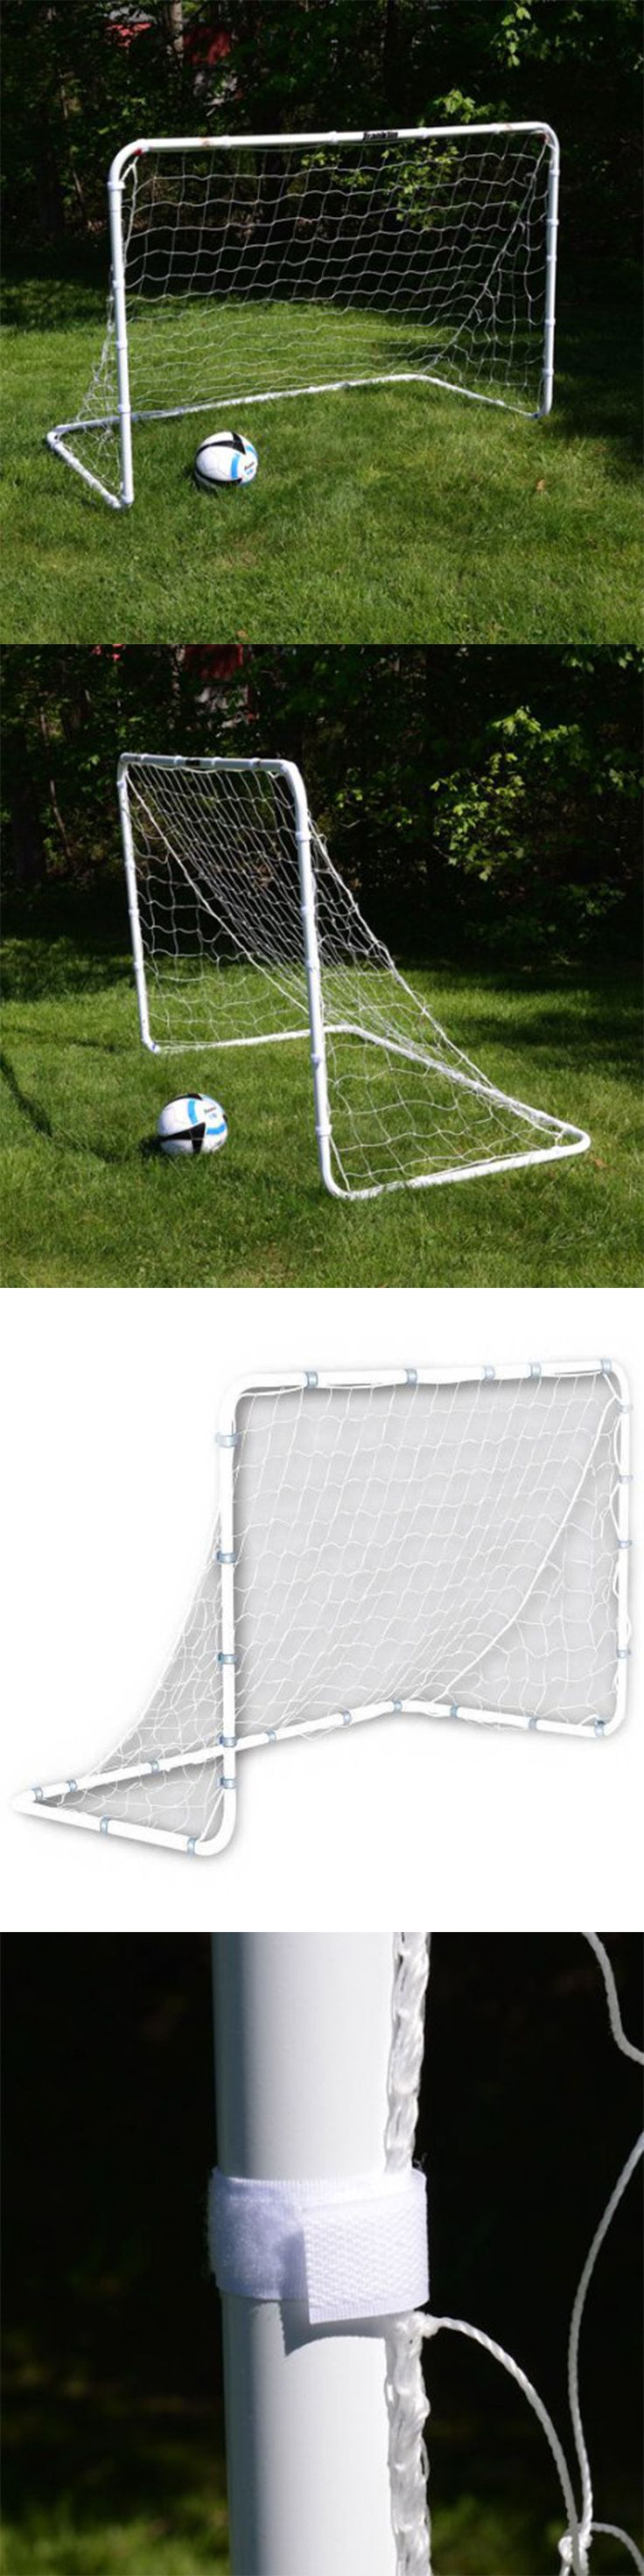 Goals and Nets 159180: 6 X 4 Portable Soccer Goal Football Training Outdoor Kids Sport Steel Foldable -> BUY IT NOW ONLY: $44.89 on eBay!